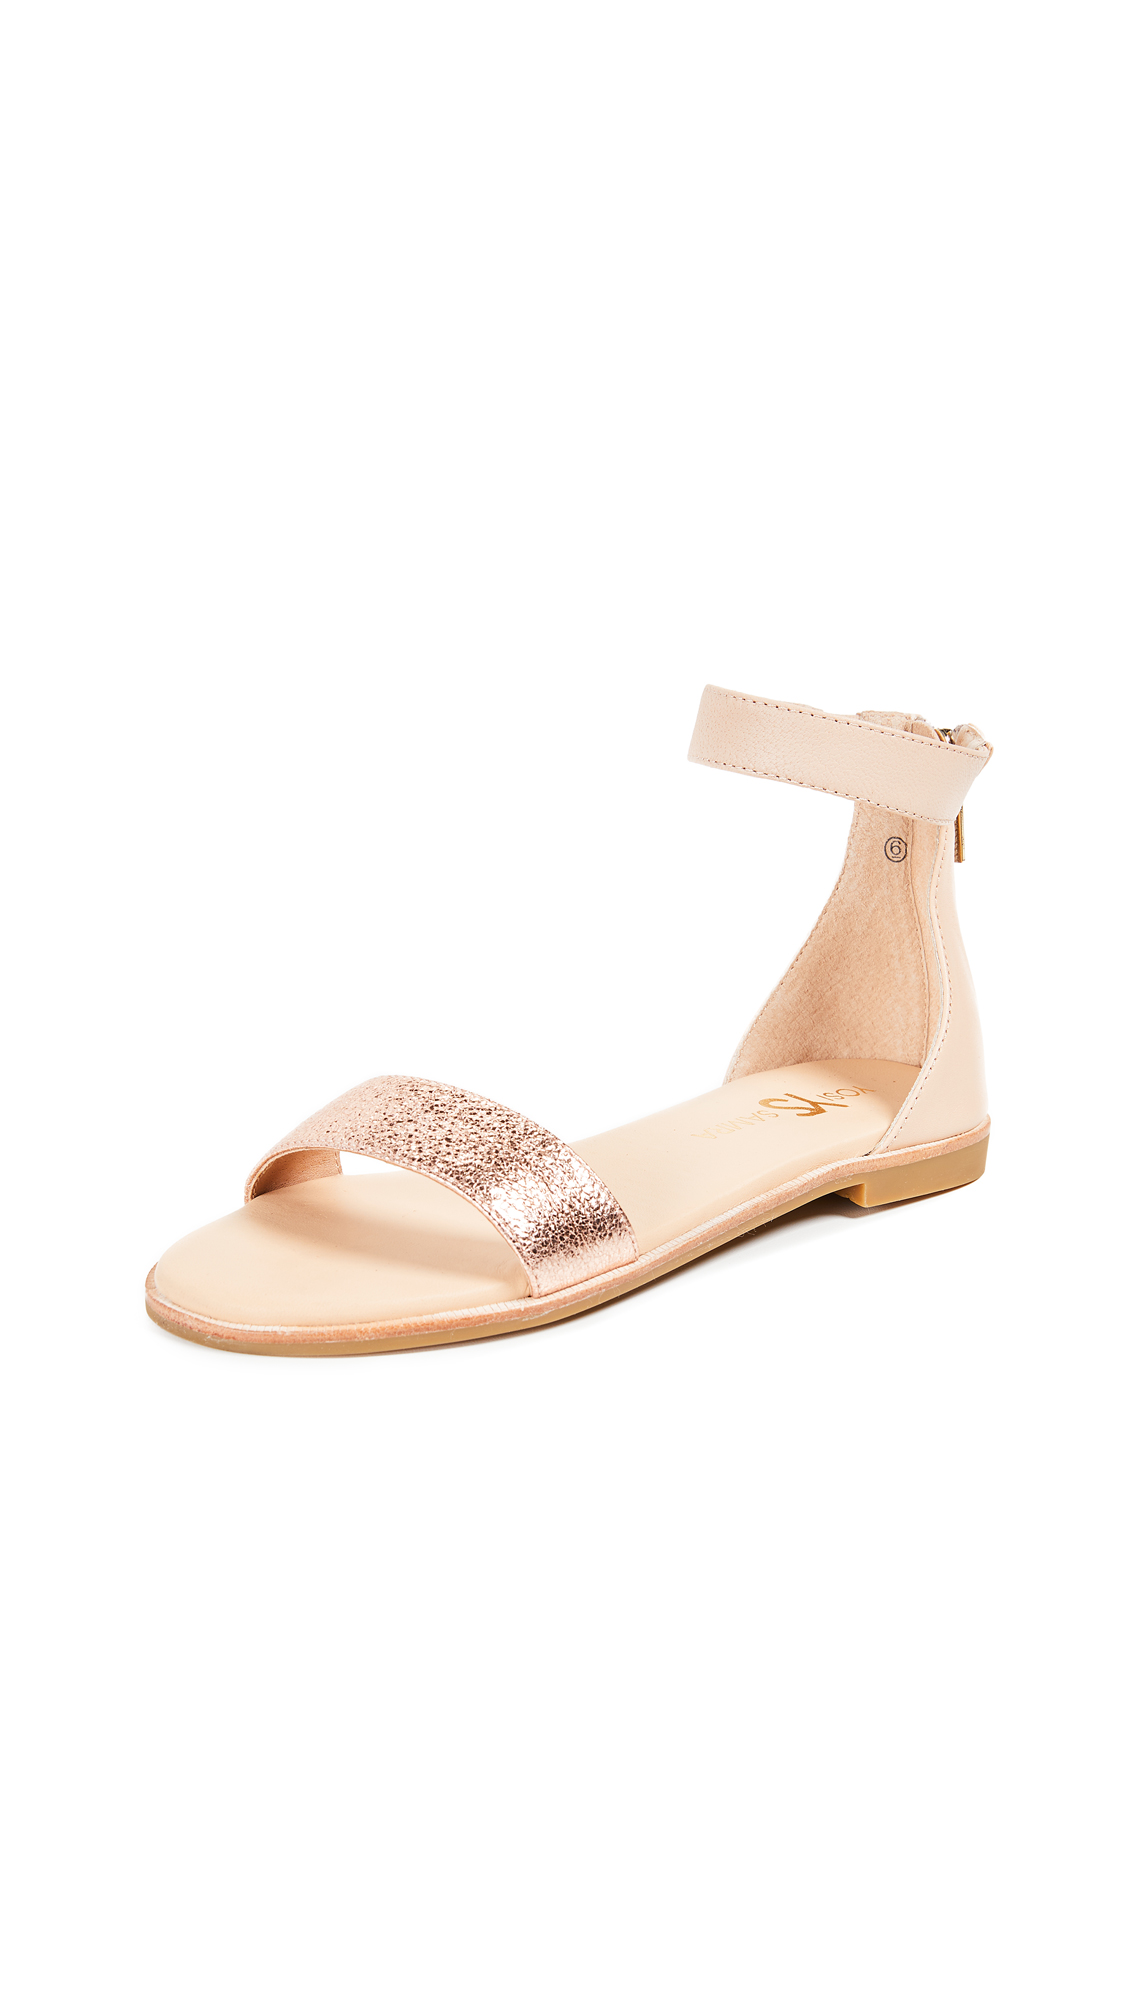 Yosi Samra Cambelle Ankle Strap Sandals In Nude/Rose Gold